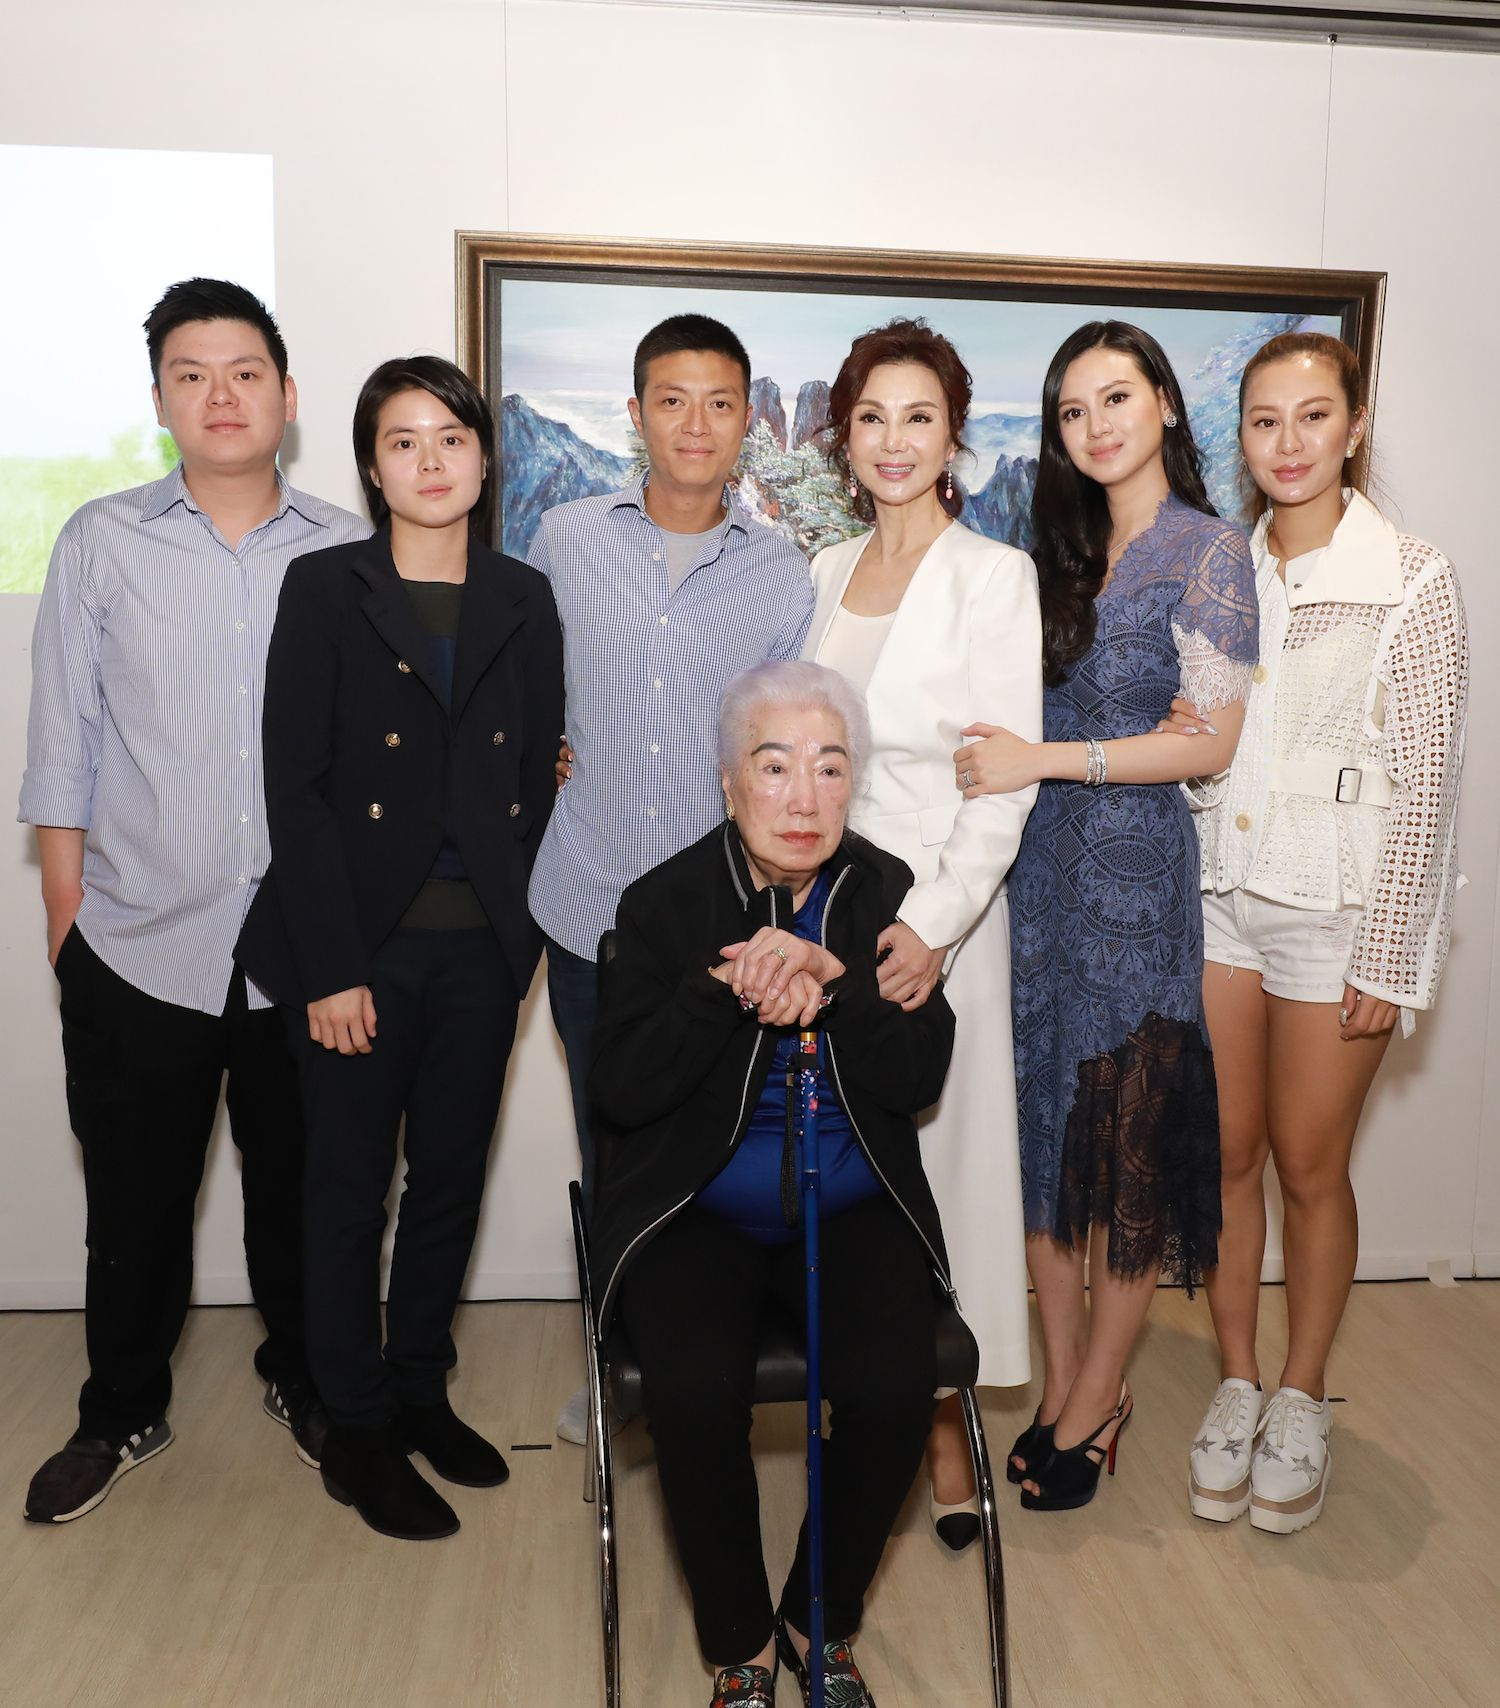 Standing - Lucas Lam, Evelyn Lam, Lester Lam, Lynn Hsieh, Emily Lam-Ho and Eleanor Lam. Seated - U Po-chu